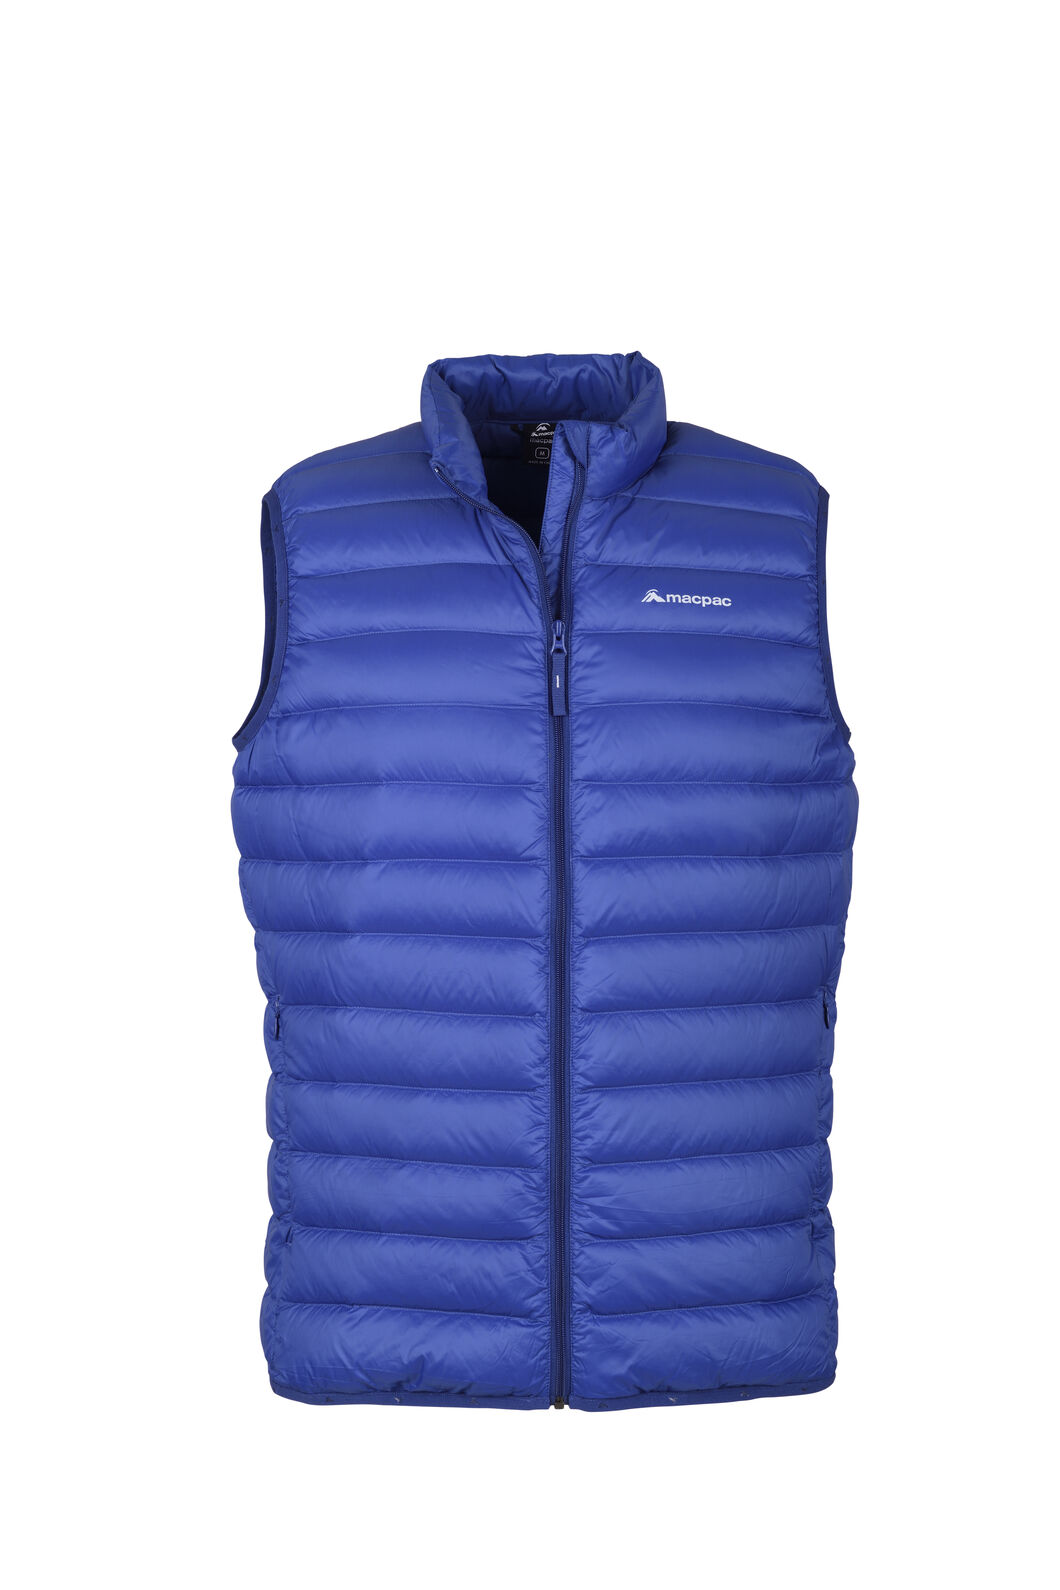 Macpac Uber Light Down Vest - Men's, Blue Depths, hi-res